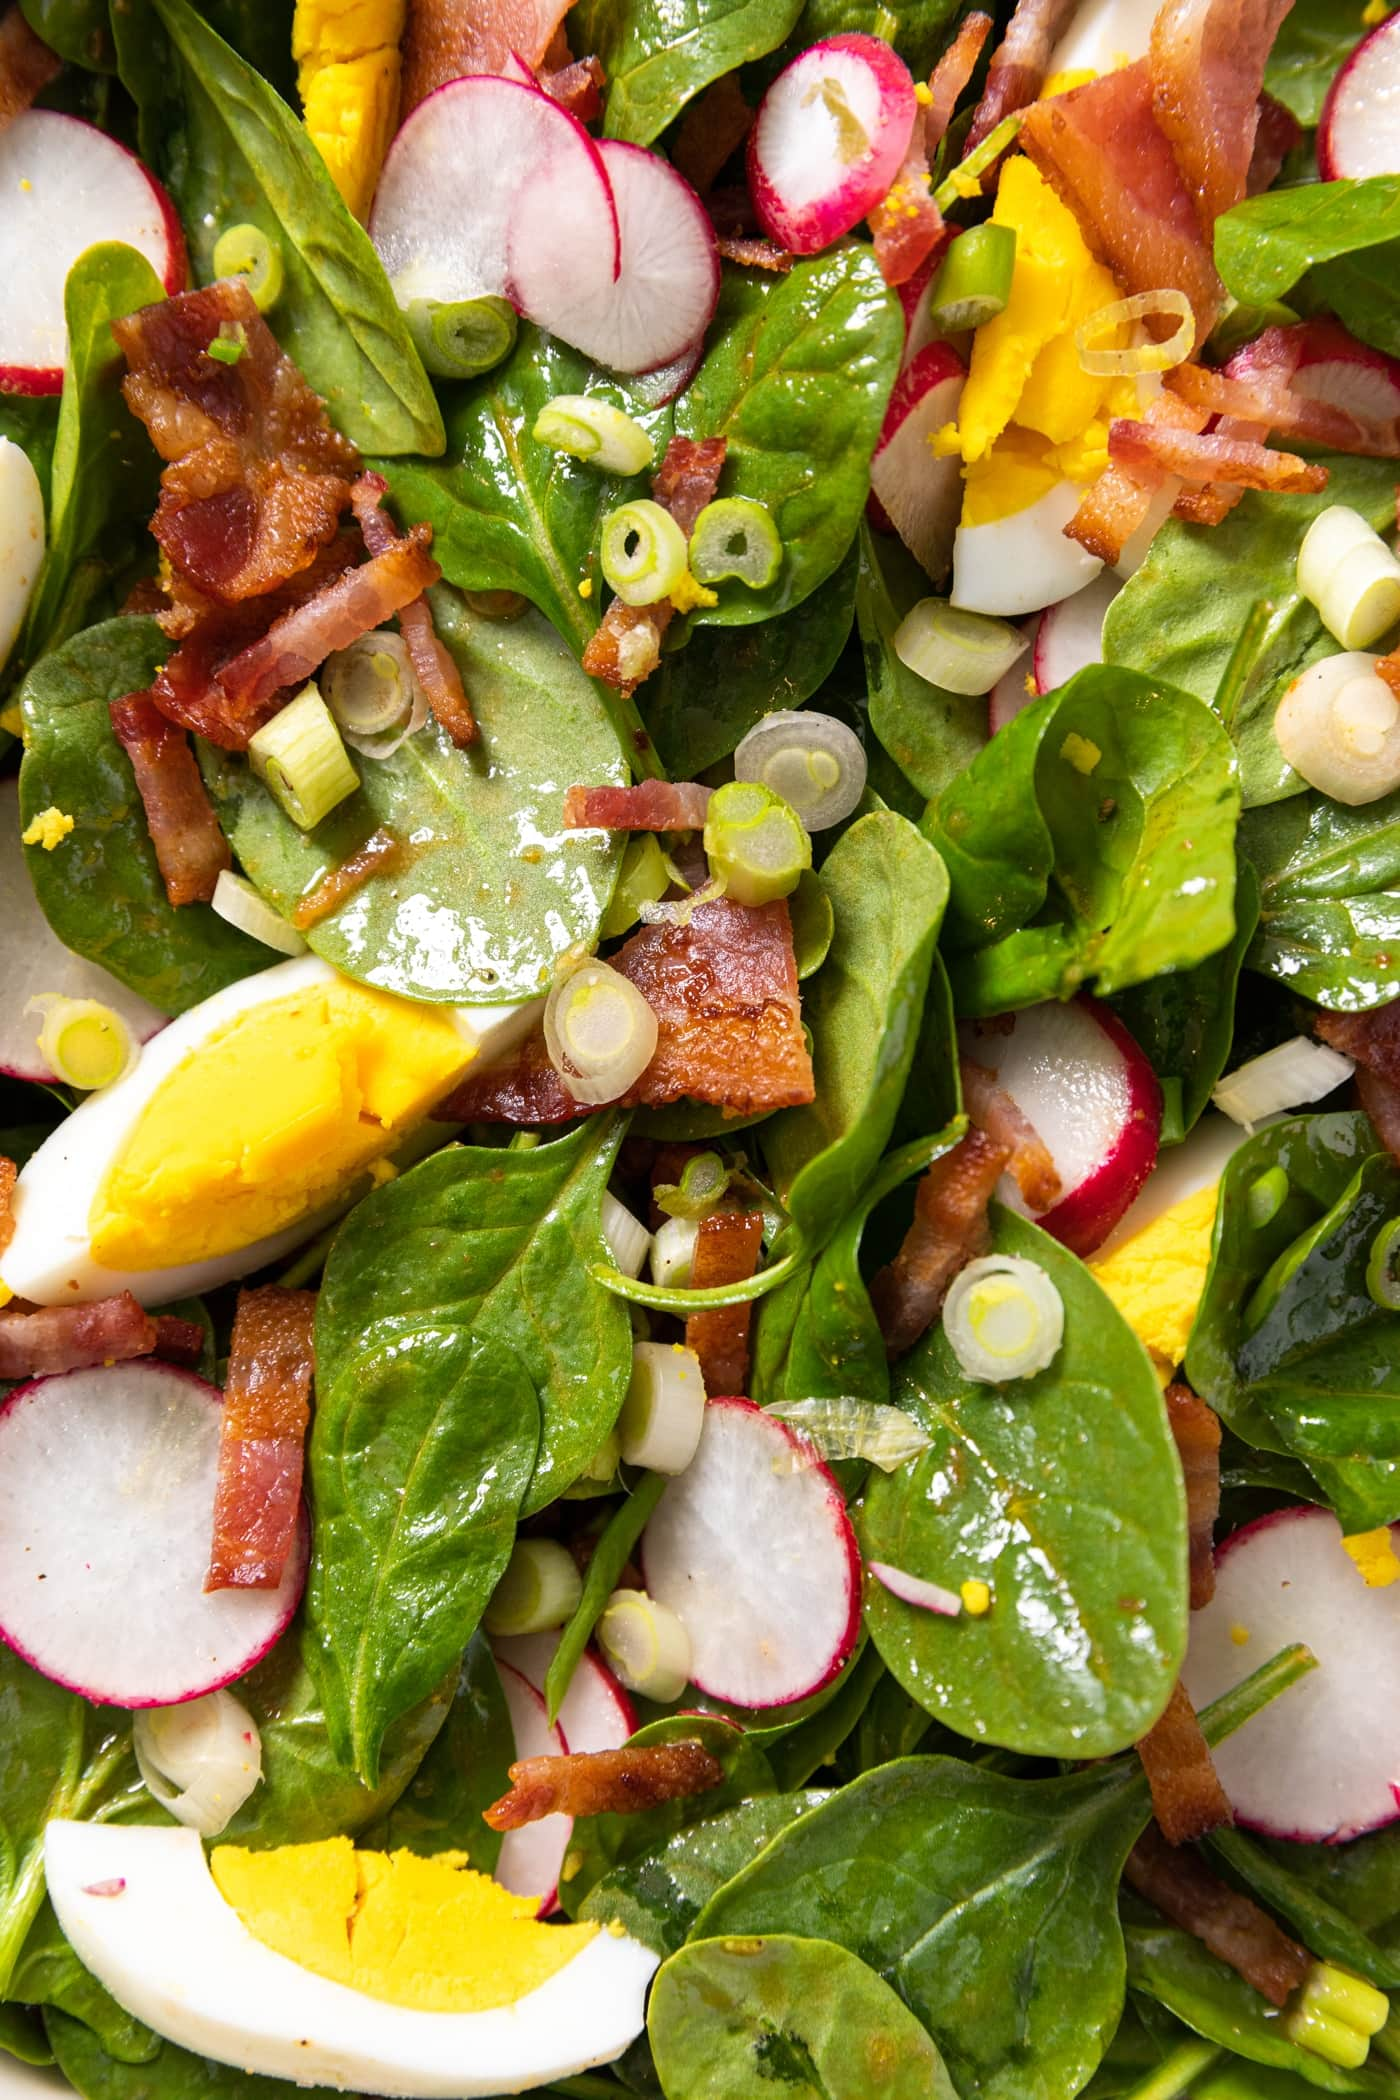 Up close view of salad greens topped with hardboiled eggs, bacon, scallion, and radish